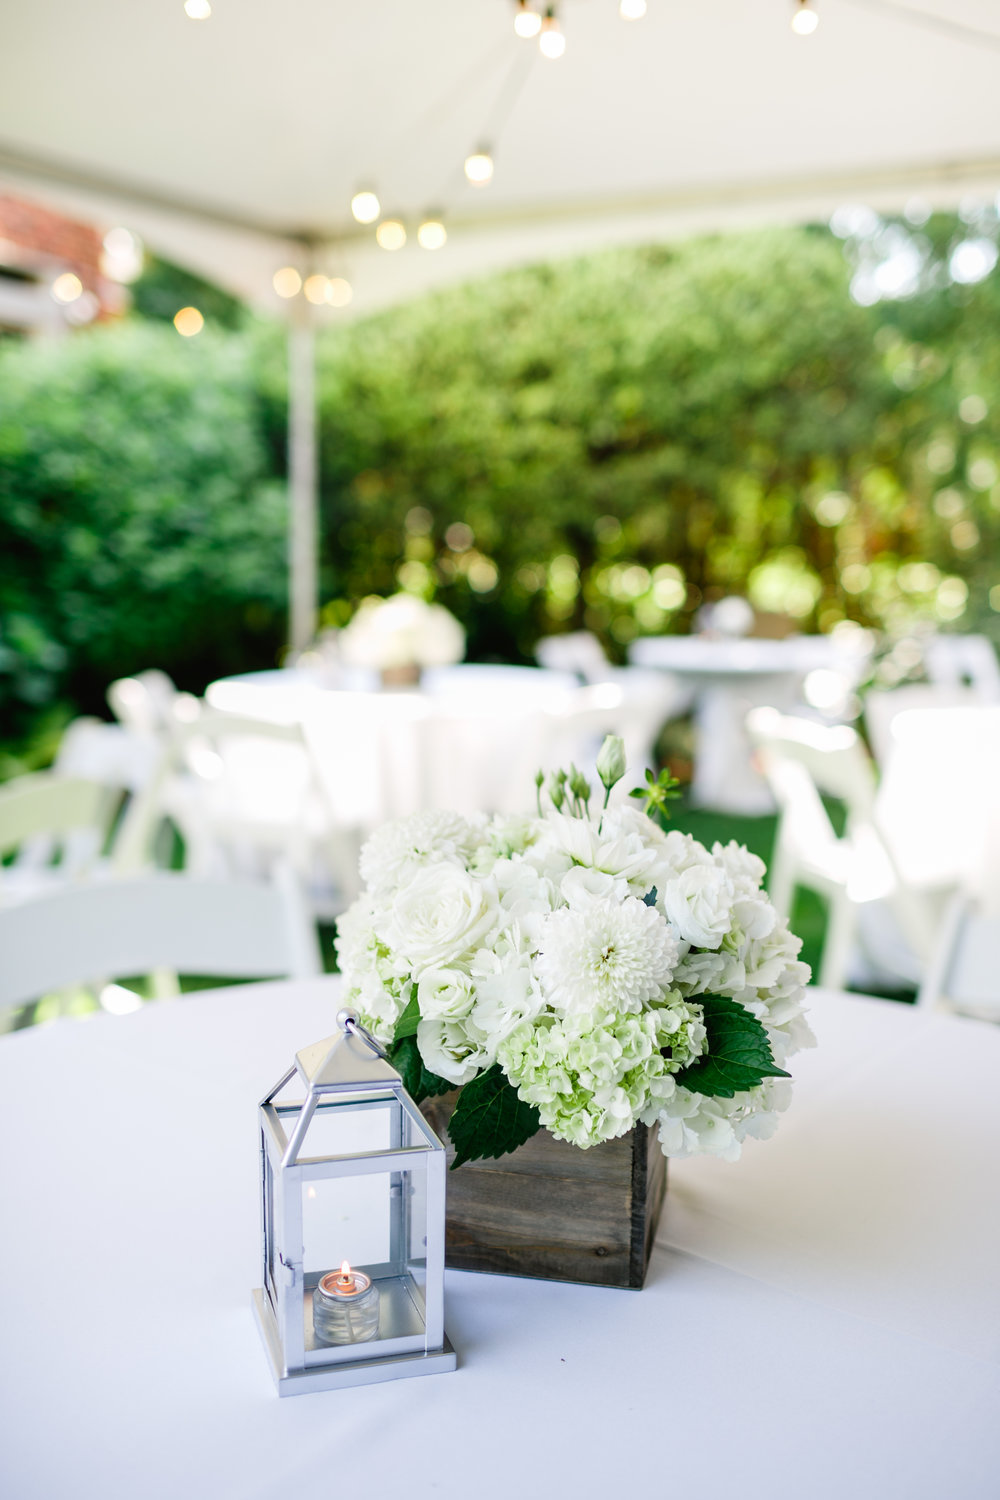 40th Anniversary Party  White and Green Centerpieces  Table Candles  Planning by Wrap It Up Parties